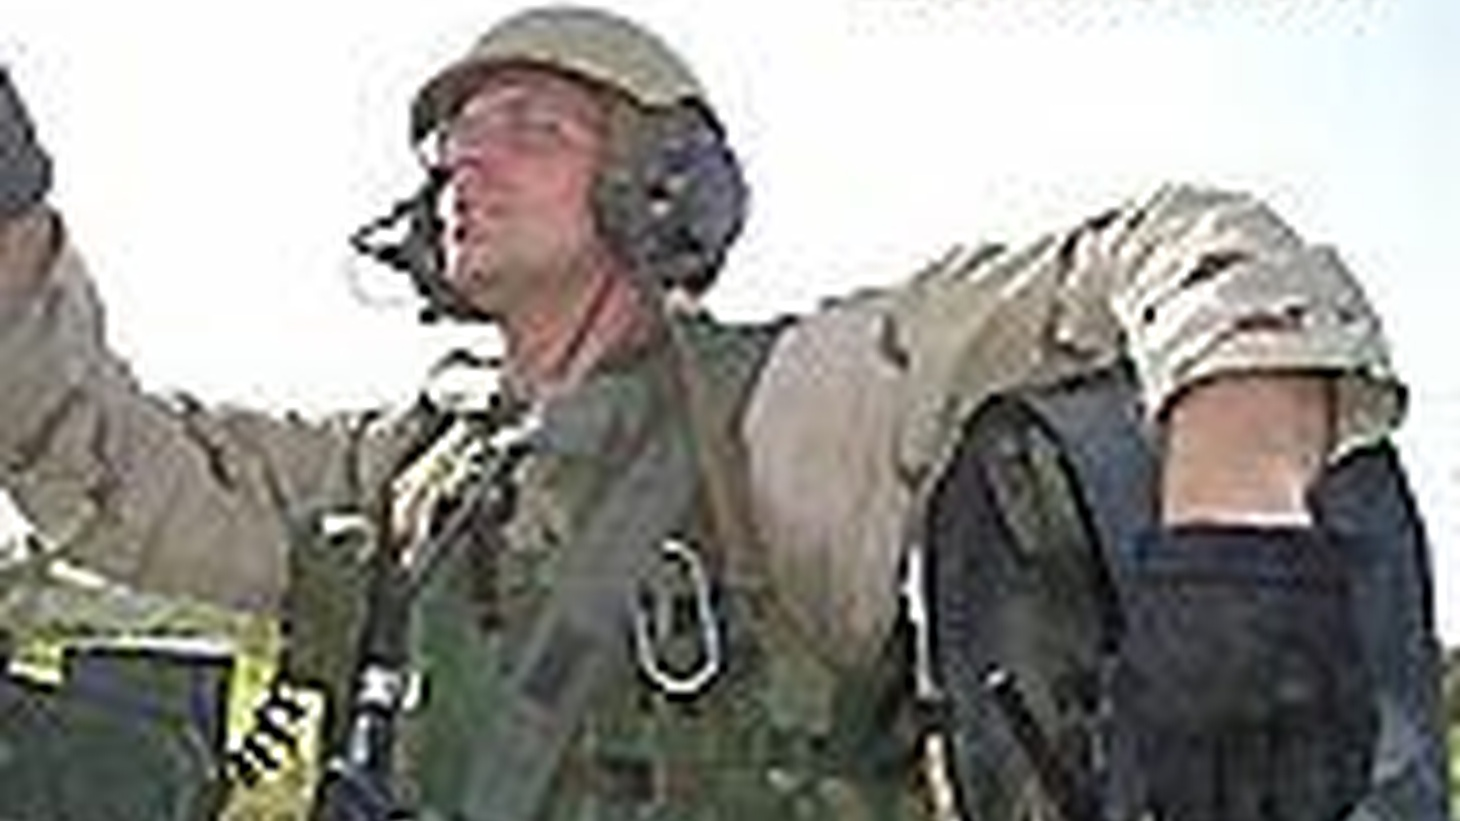 After four years, the Iraq war had a big impact on California. Camp Pendleton leads all US bases in deaths and injuries and the National Guard has been transformed. Yet it's still true that a small percent make all the sacrifices. We speak with a gold-star mother and a peace protester in Boyle Heights.